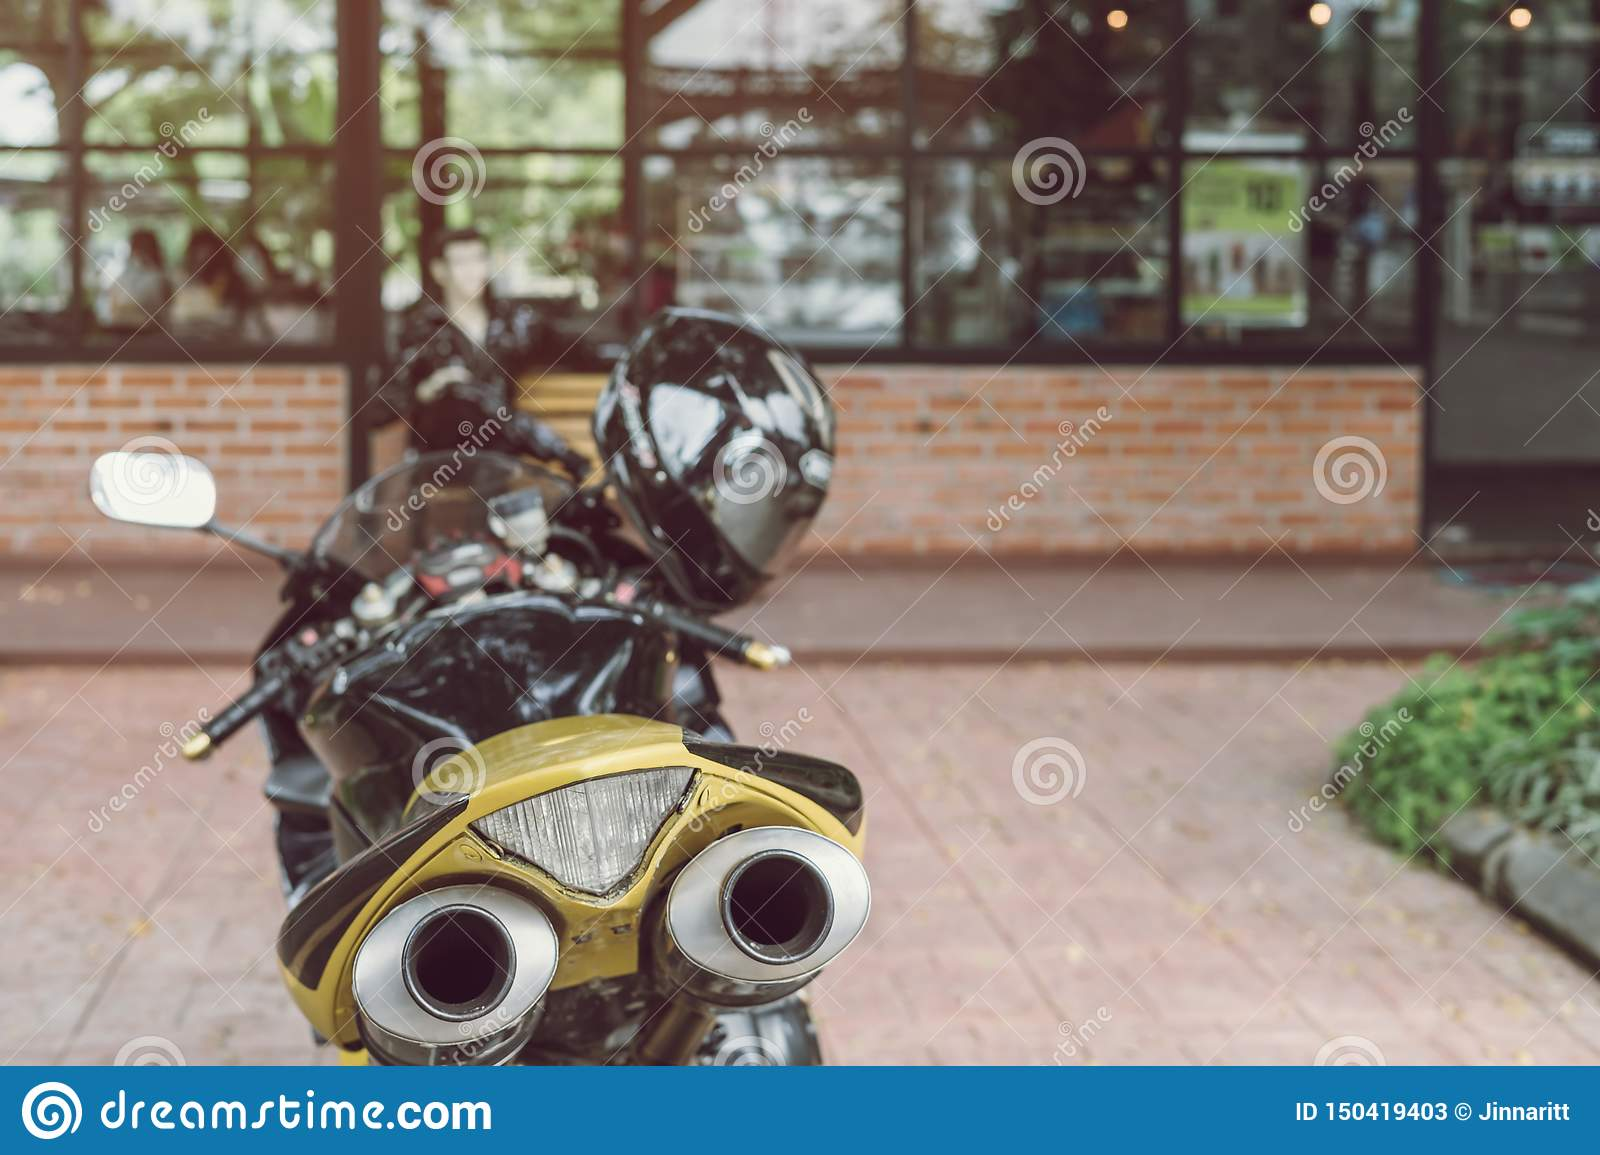 A sporty motorcycle parked in front of coffee shop